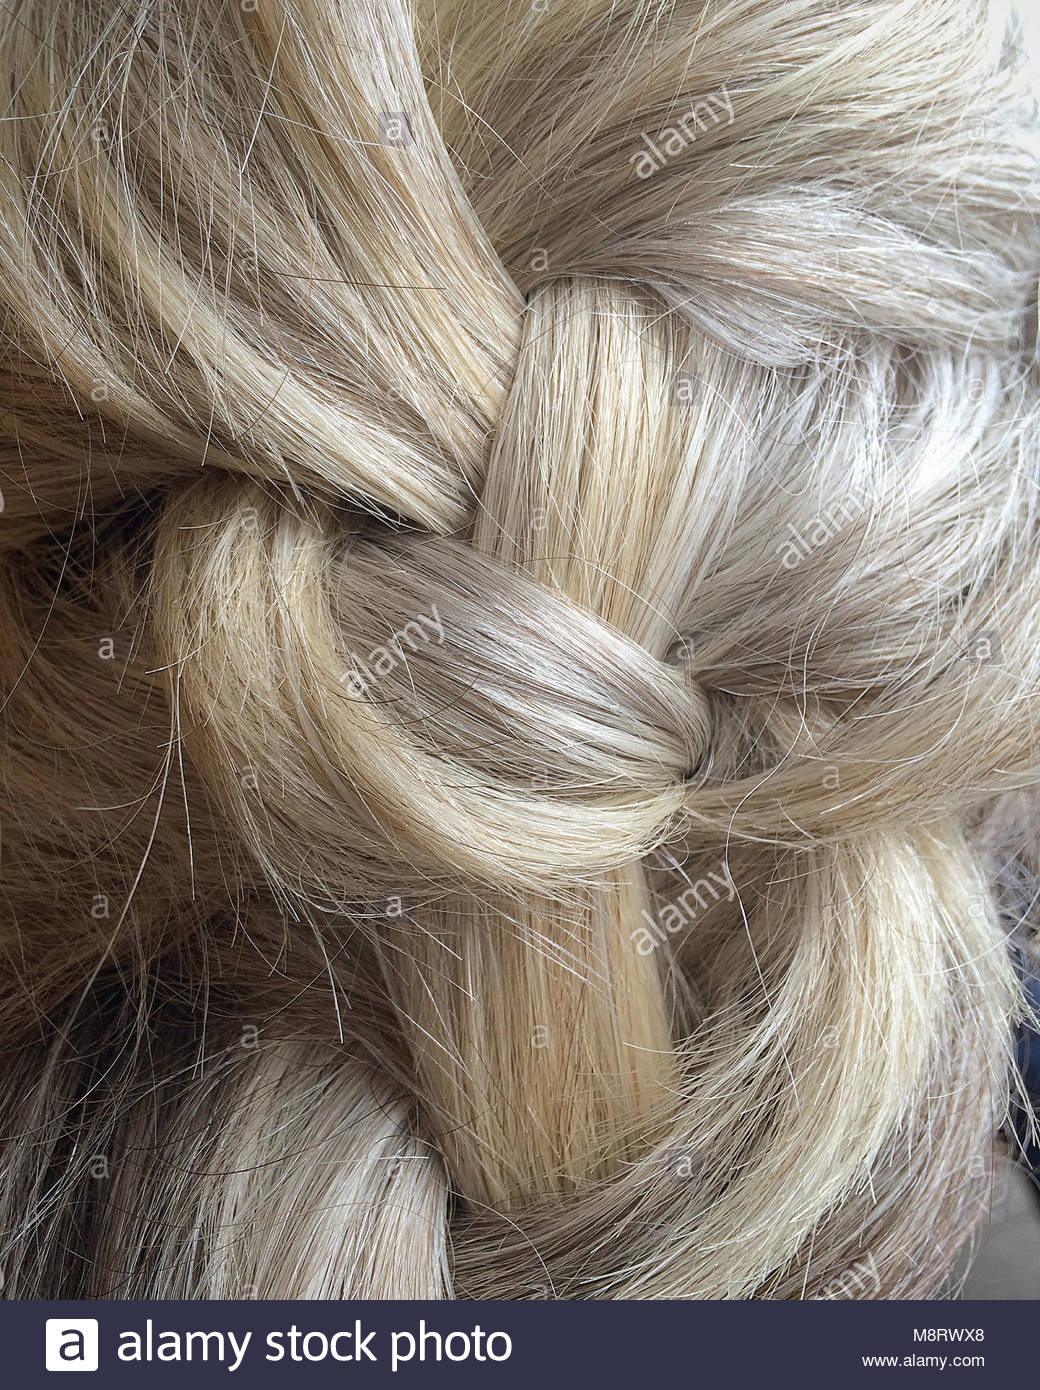 Rear view of woman with gray braided hair - Stock Image